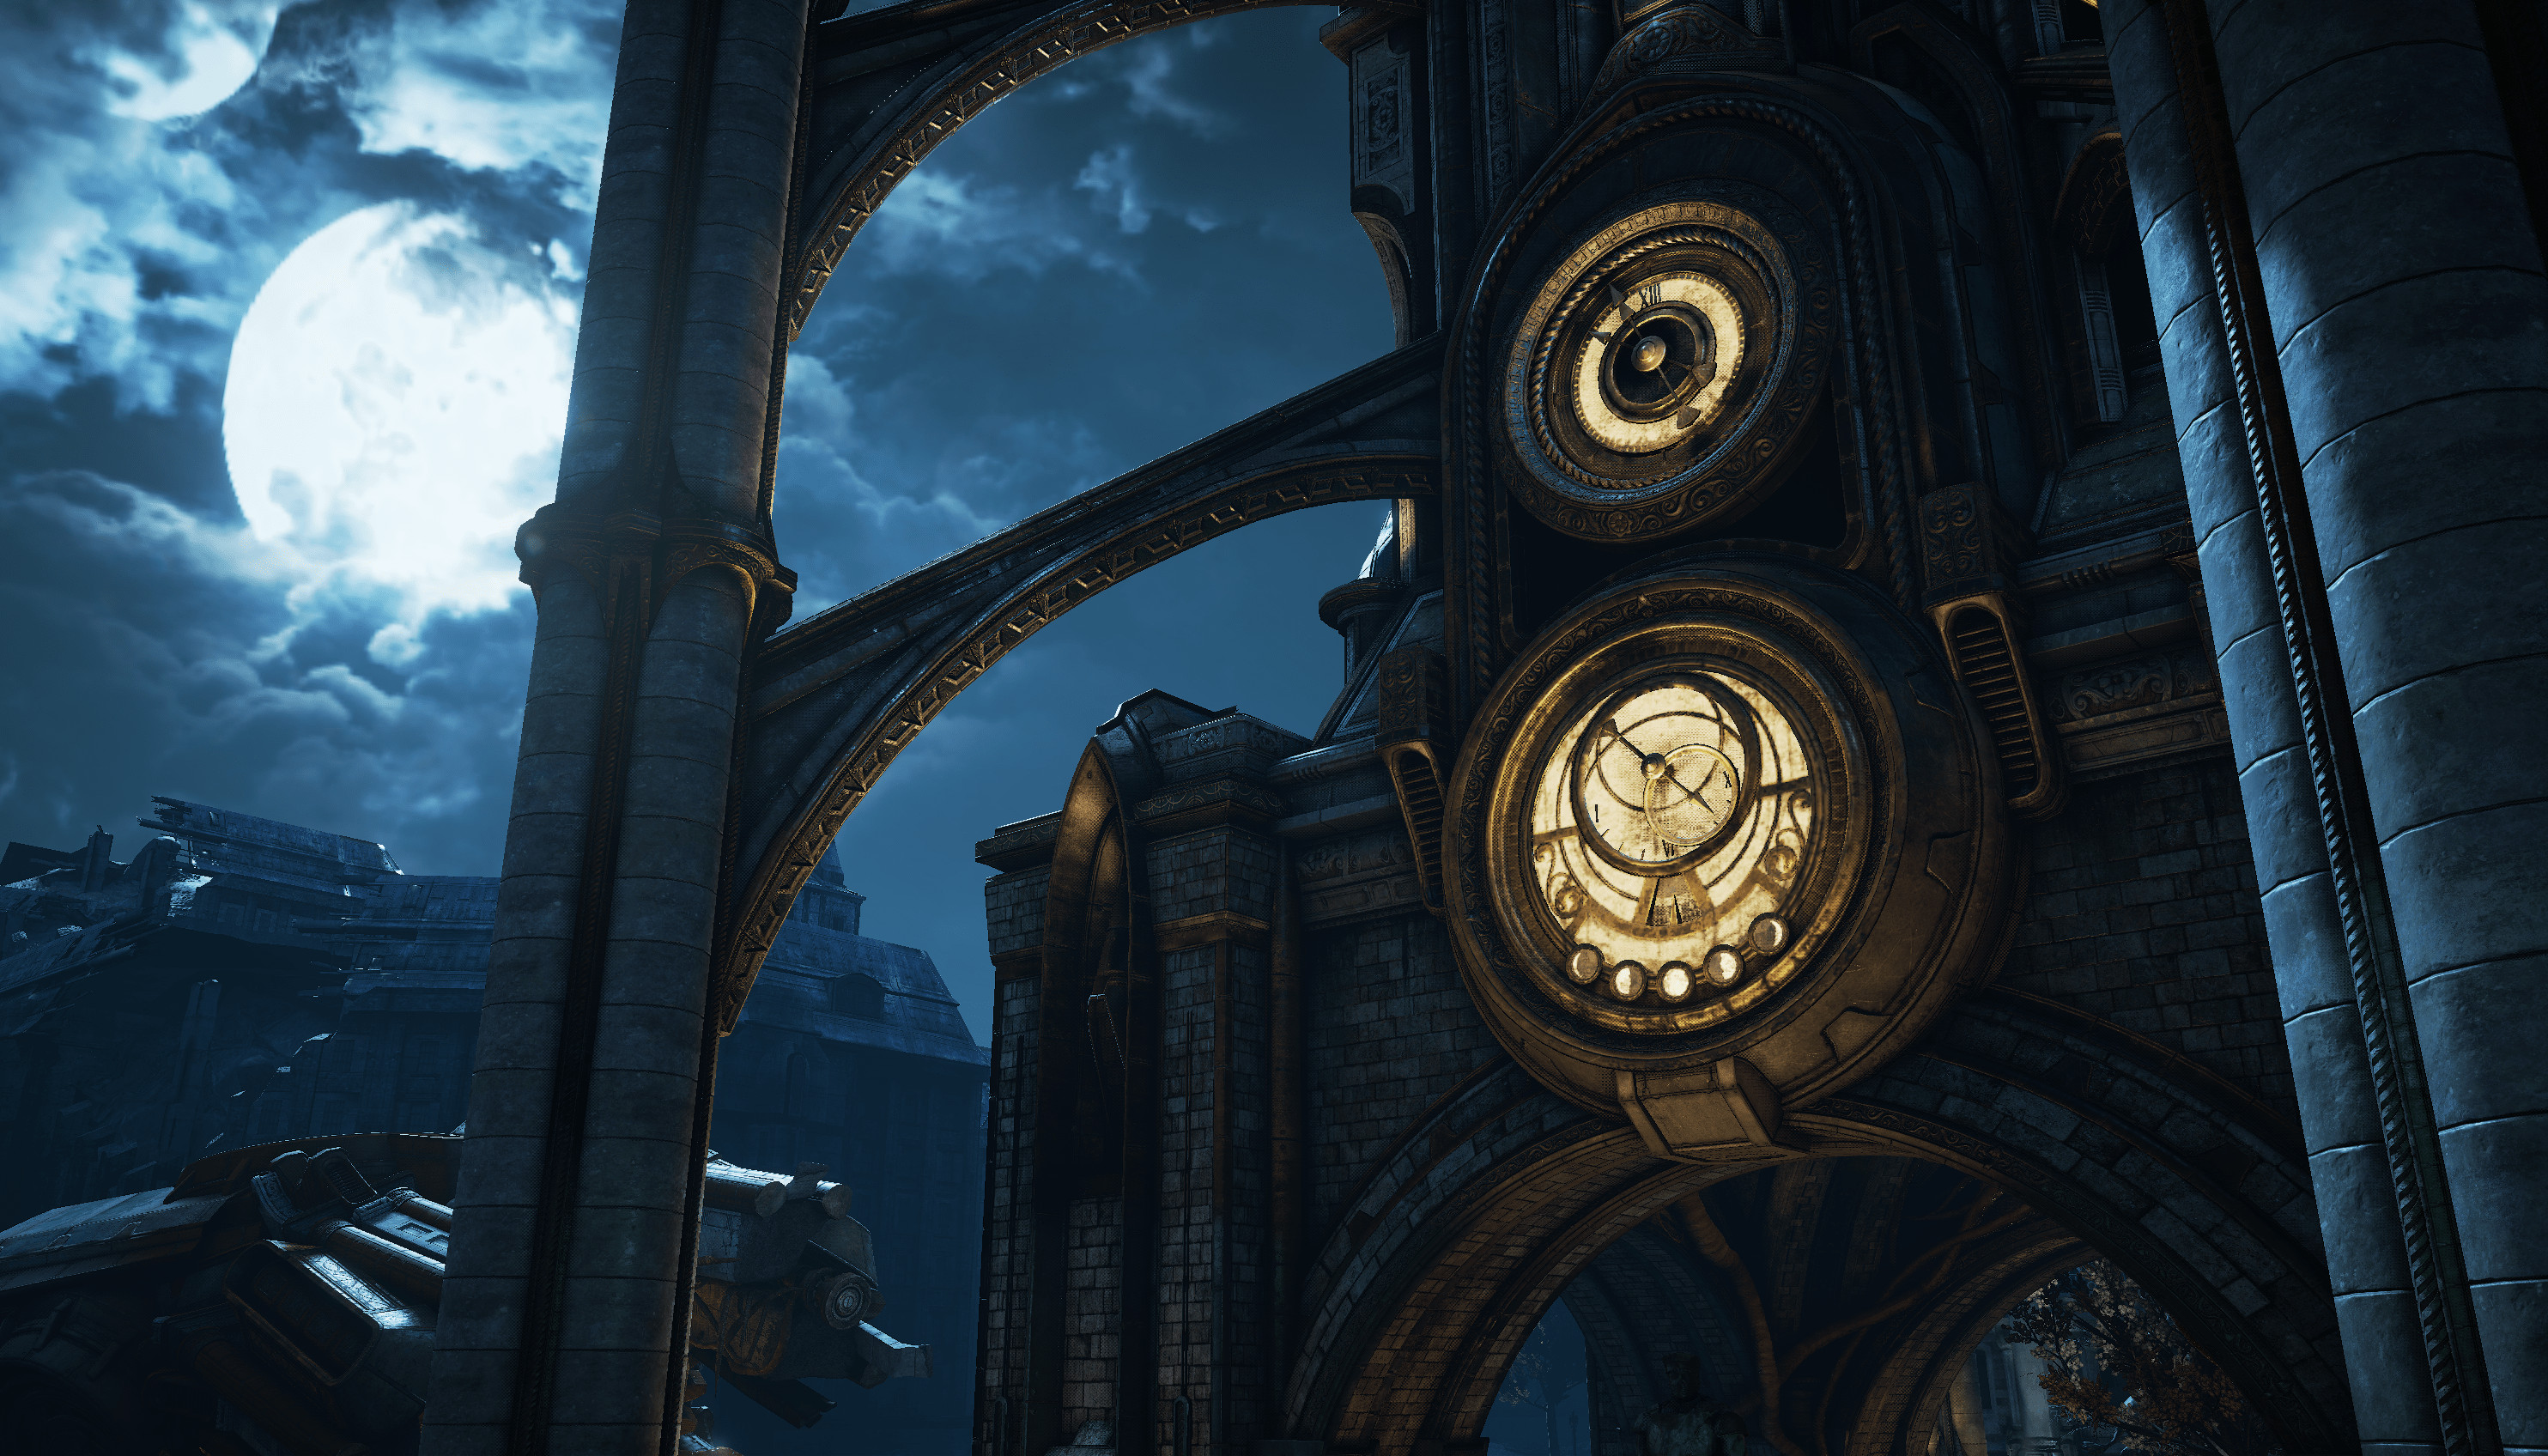 Responsible for creation clocktower look development, texture creation, and partial modeling.